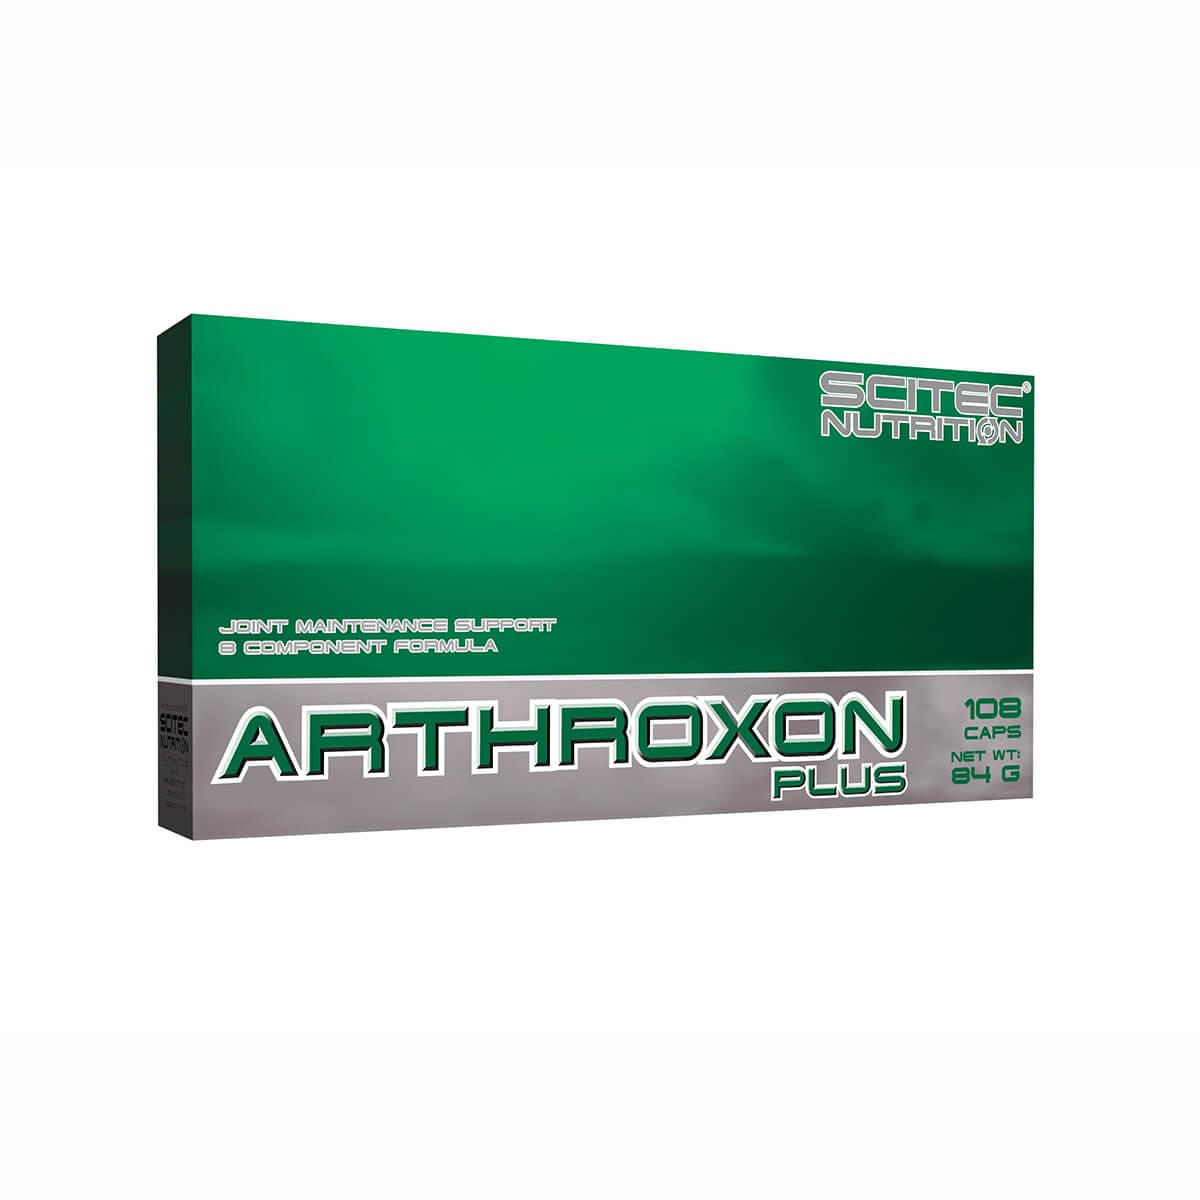 Arthroxon Plus, 108 kapszula